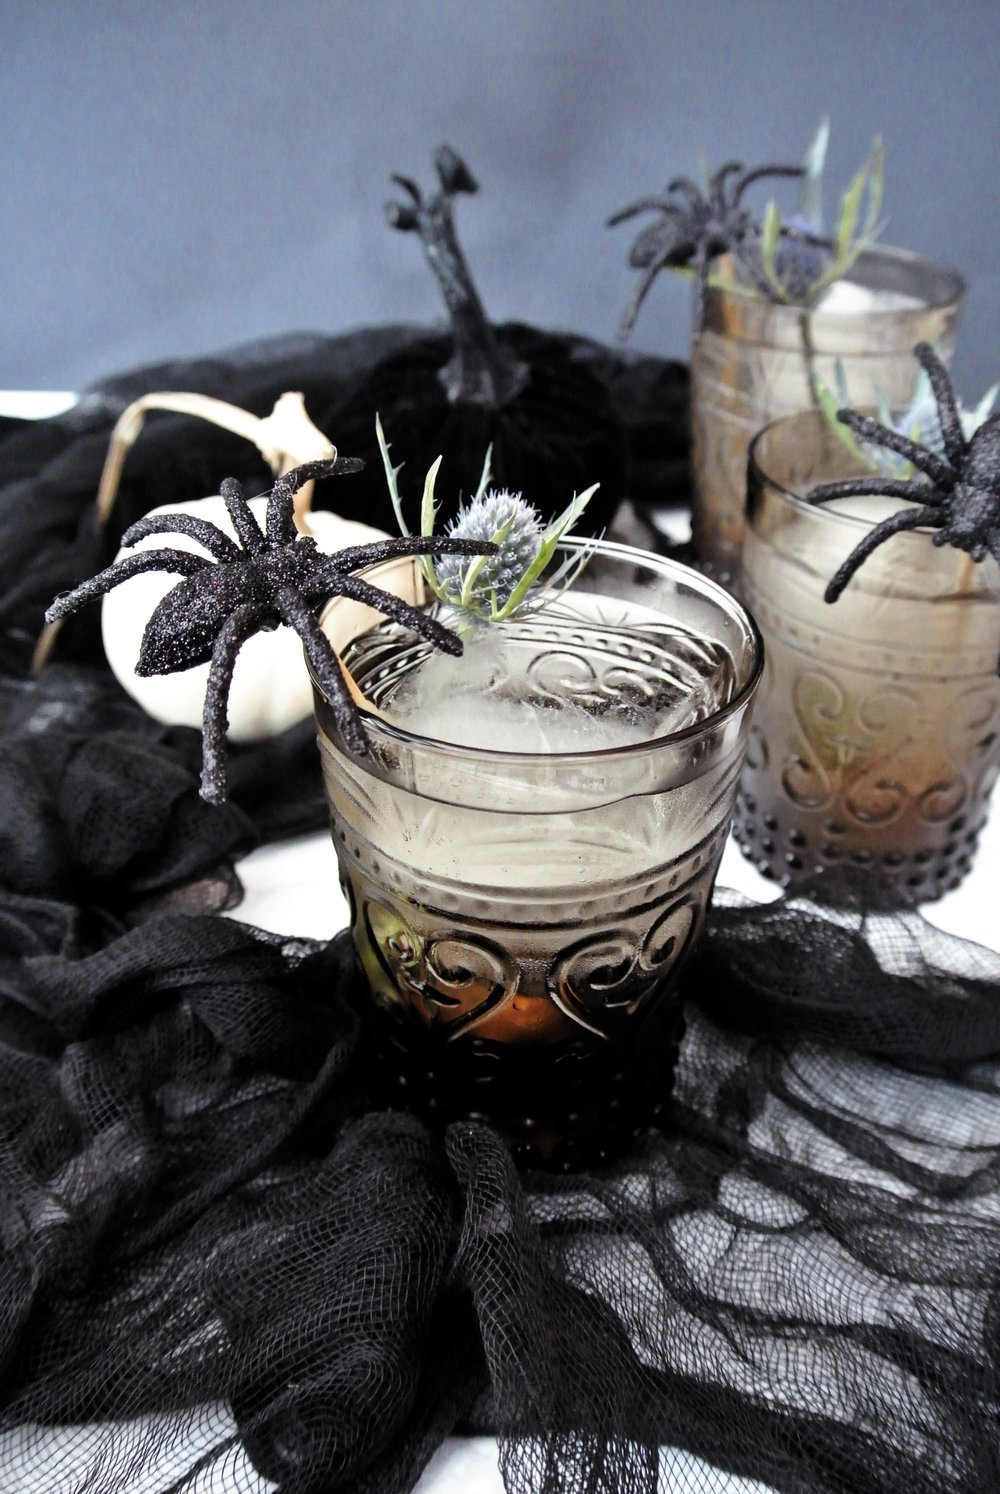 IMG_4212.JPGDIY spider stir sticks for Halloween | via crush co.